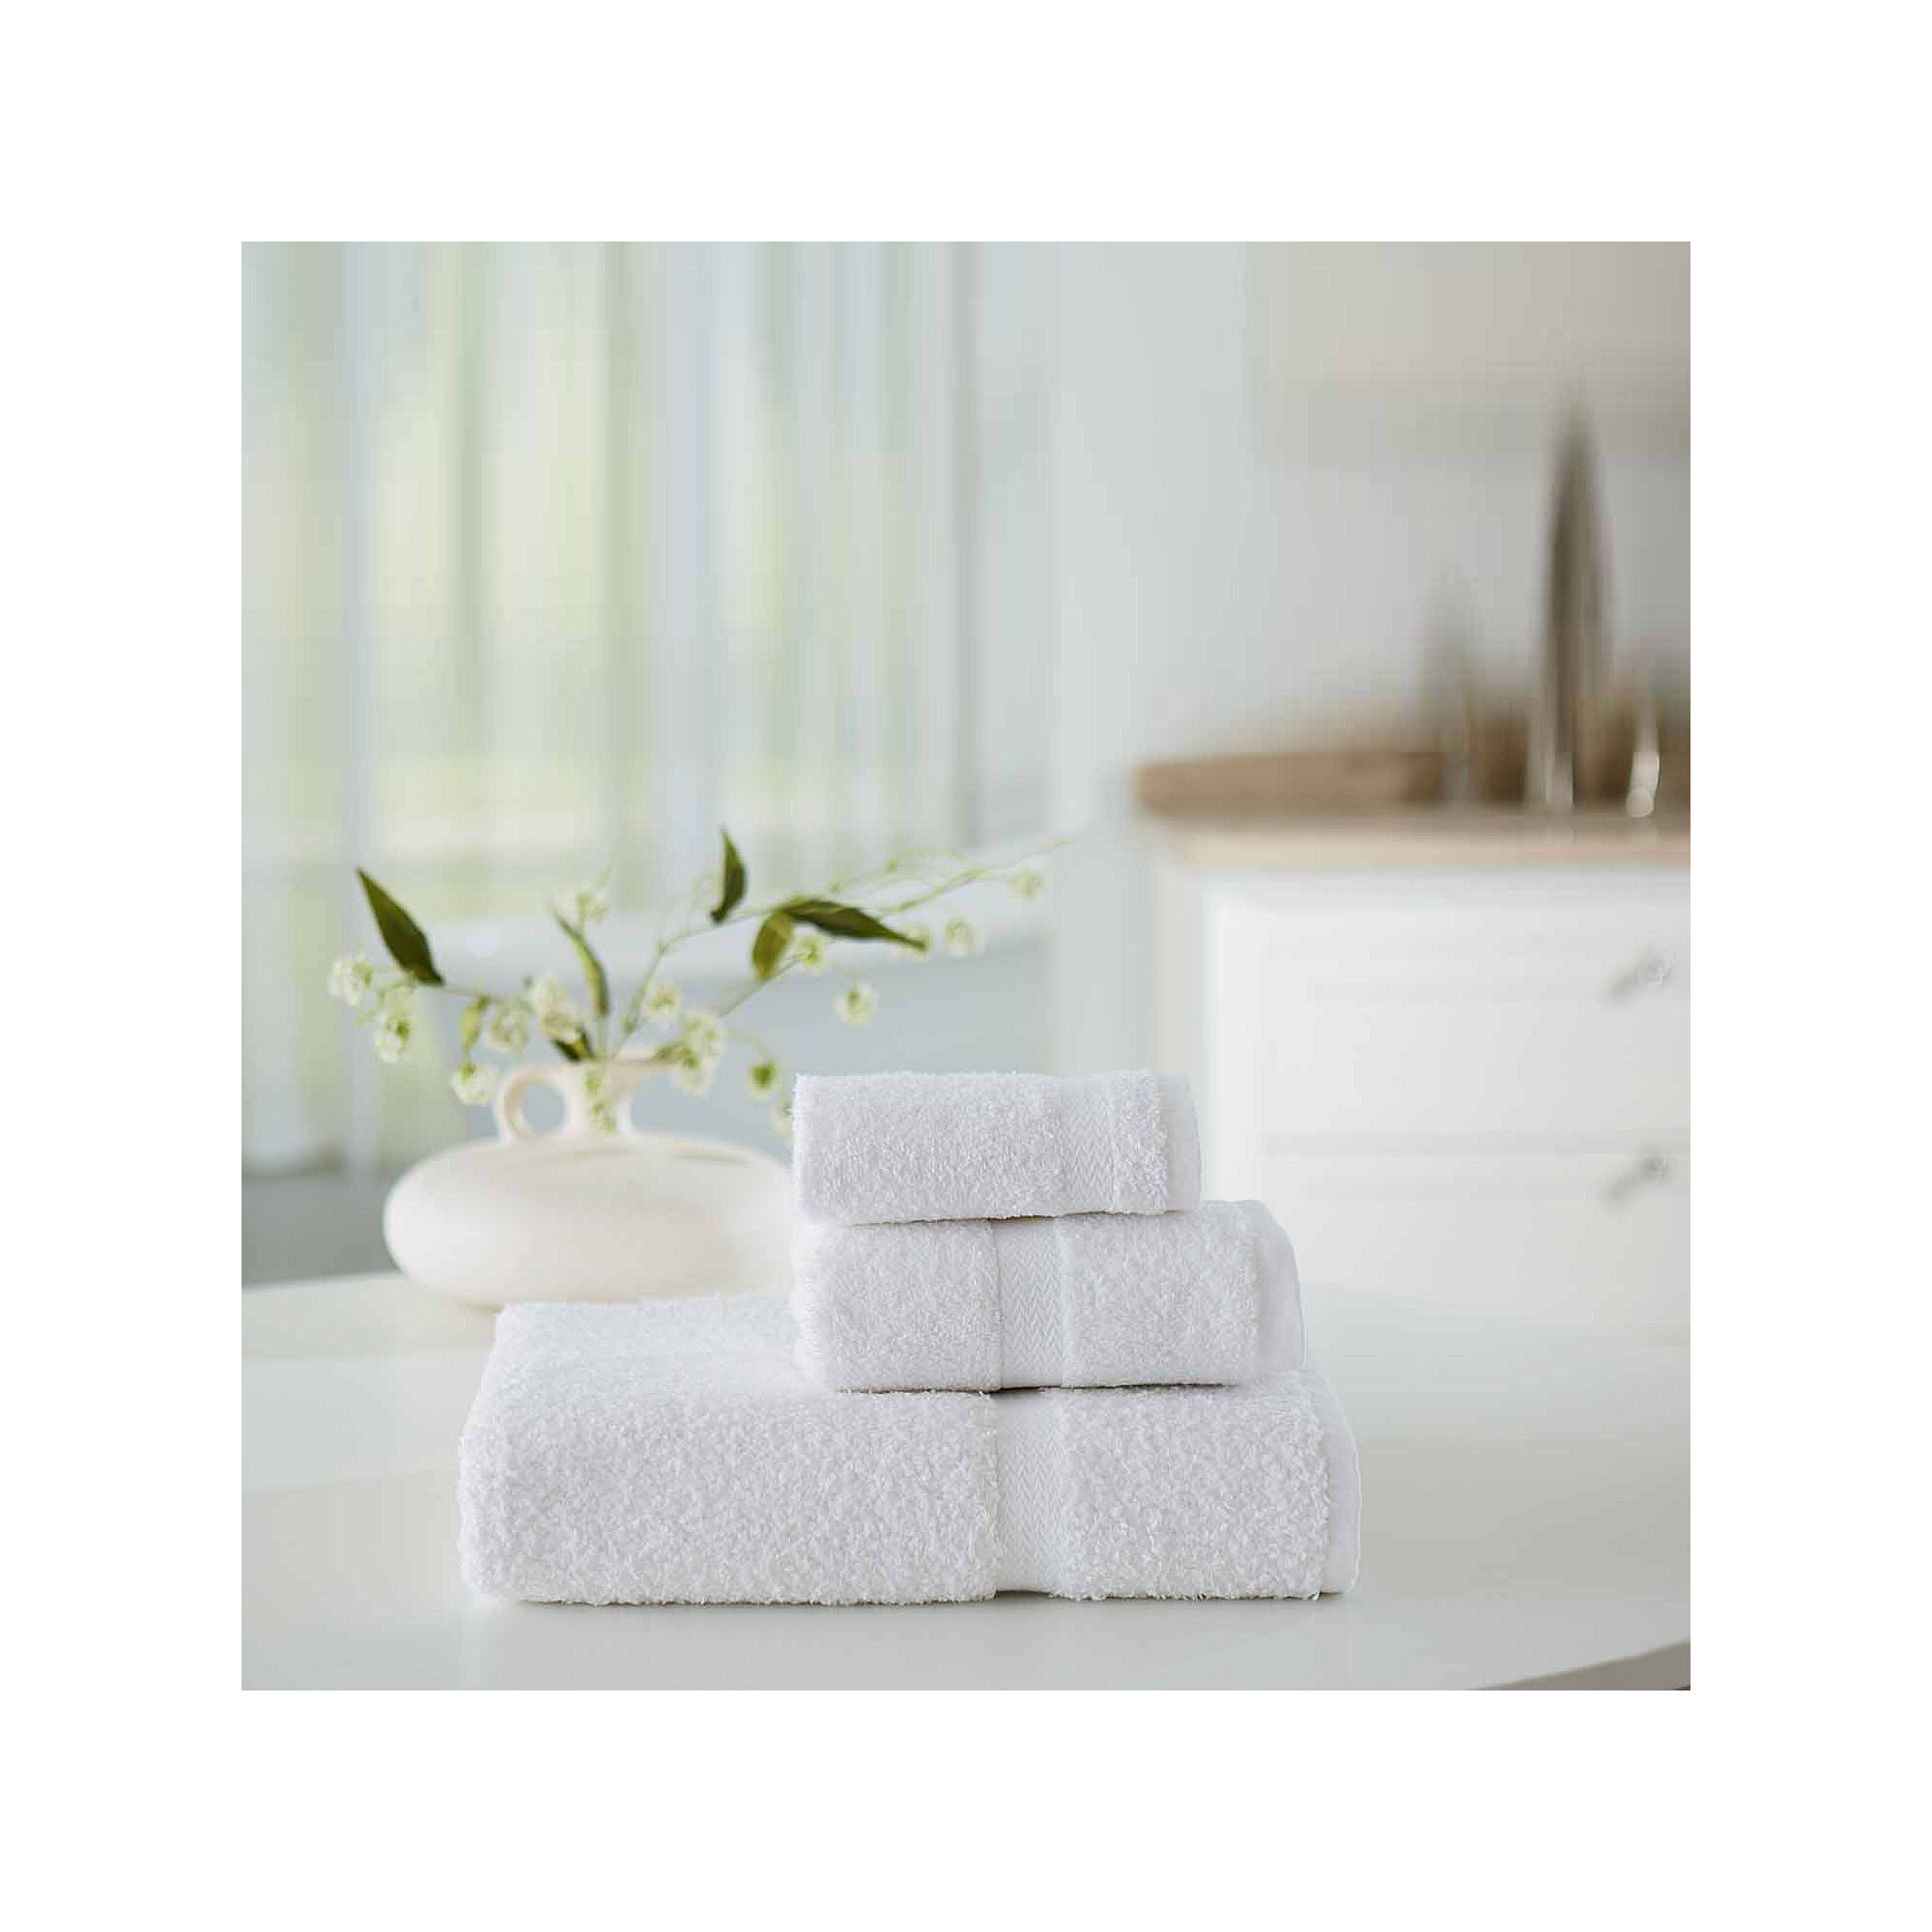 Welington 300-pc. 13x13 Washcloth Set